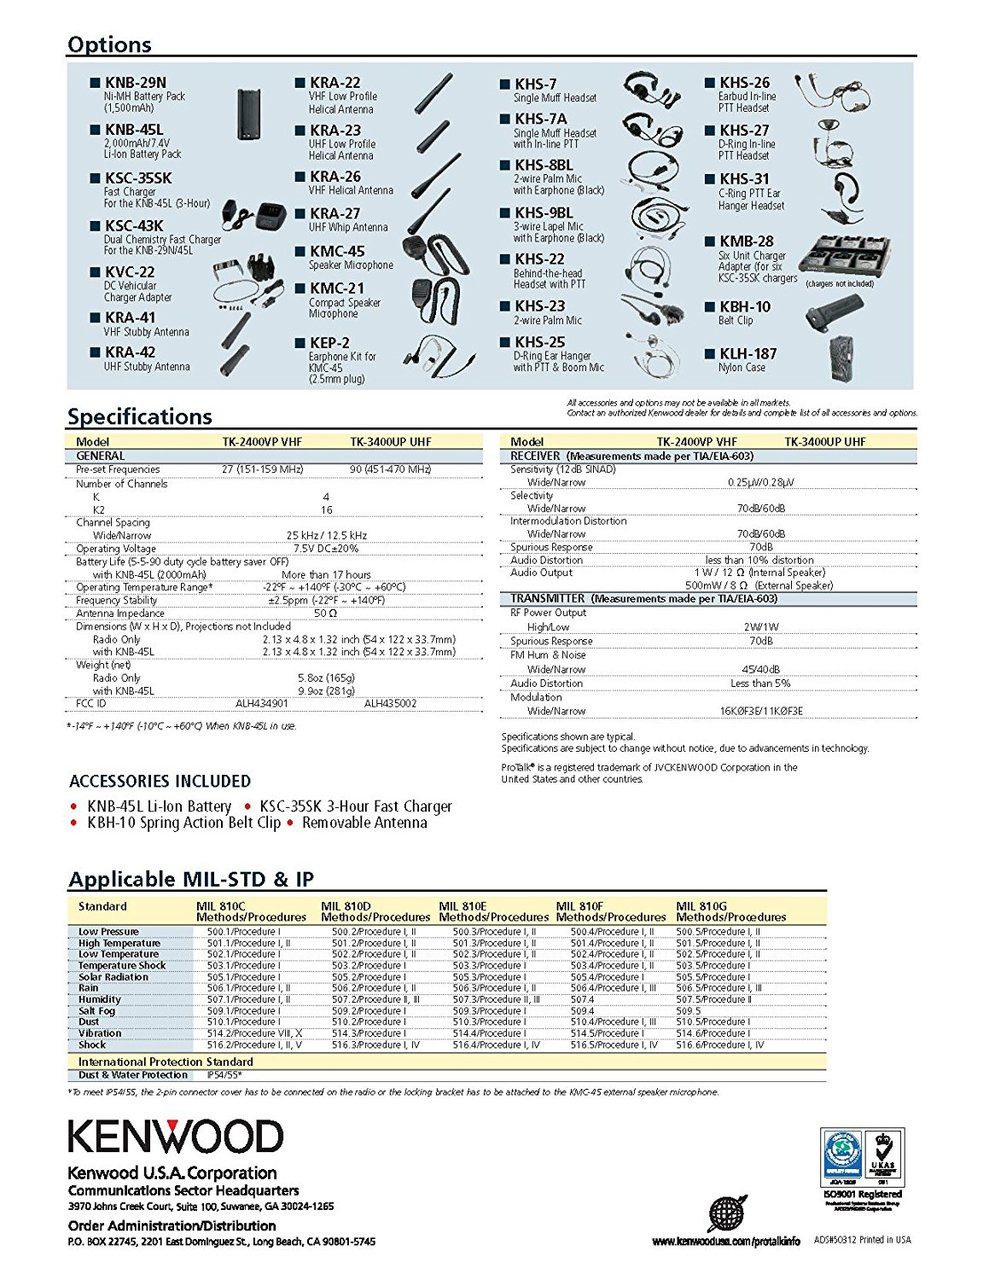 Kenwood ProTalk TK3402U16P 5 Watt 16 Channel UHF Two Way Radio Spec Sheet Page 2 of 2